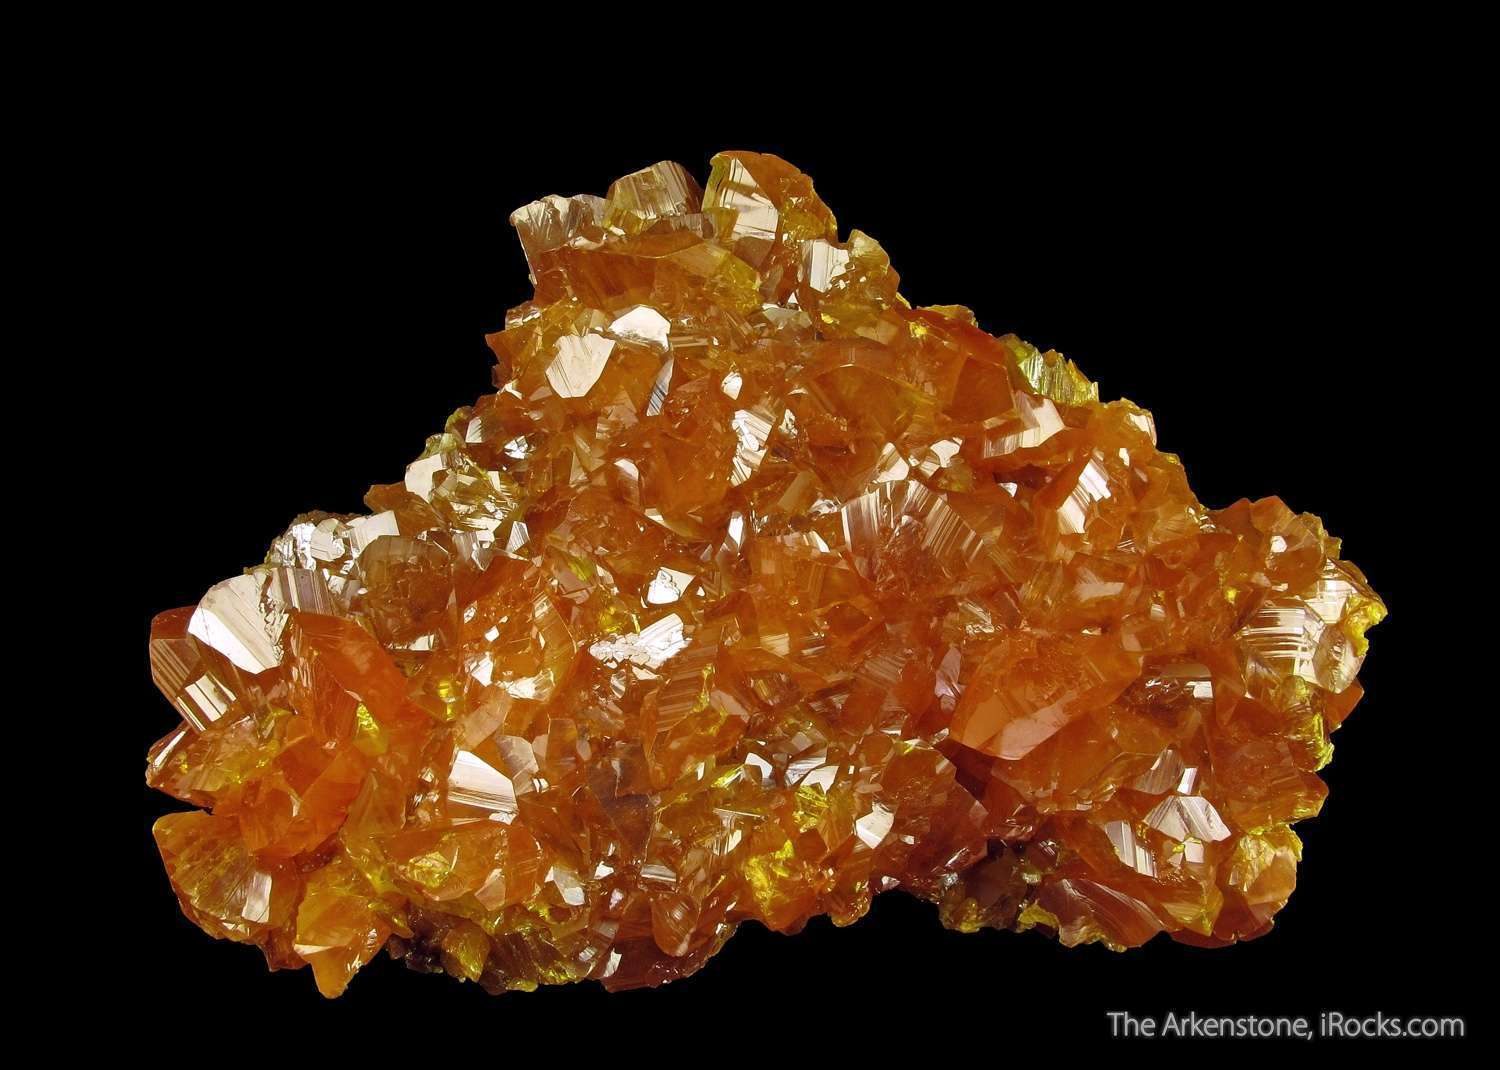 A VERY attractive Orpiment specimen Twin Creeks Mine Nevada color